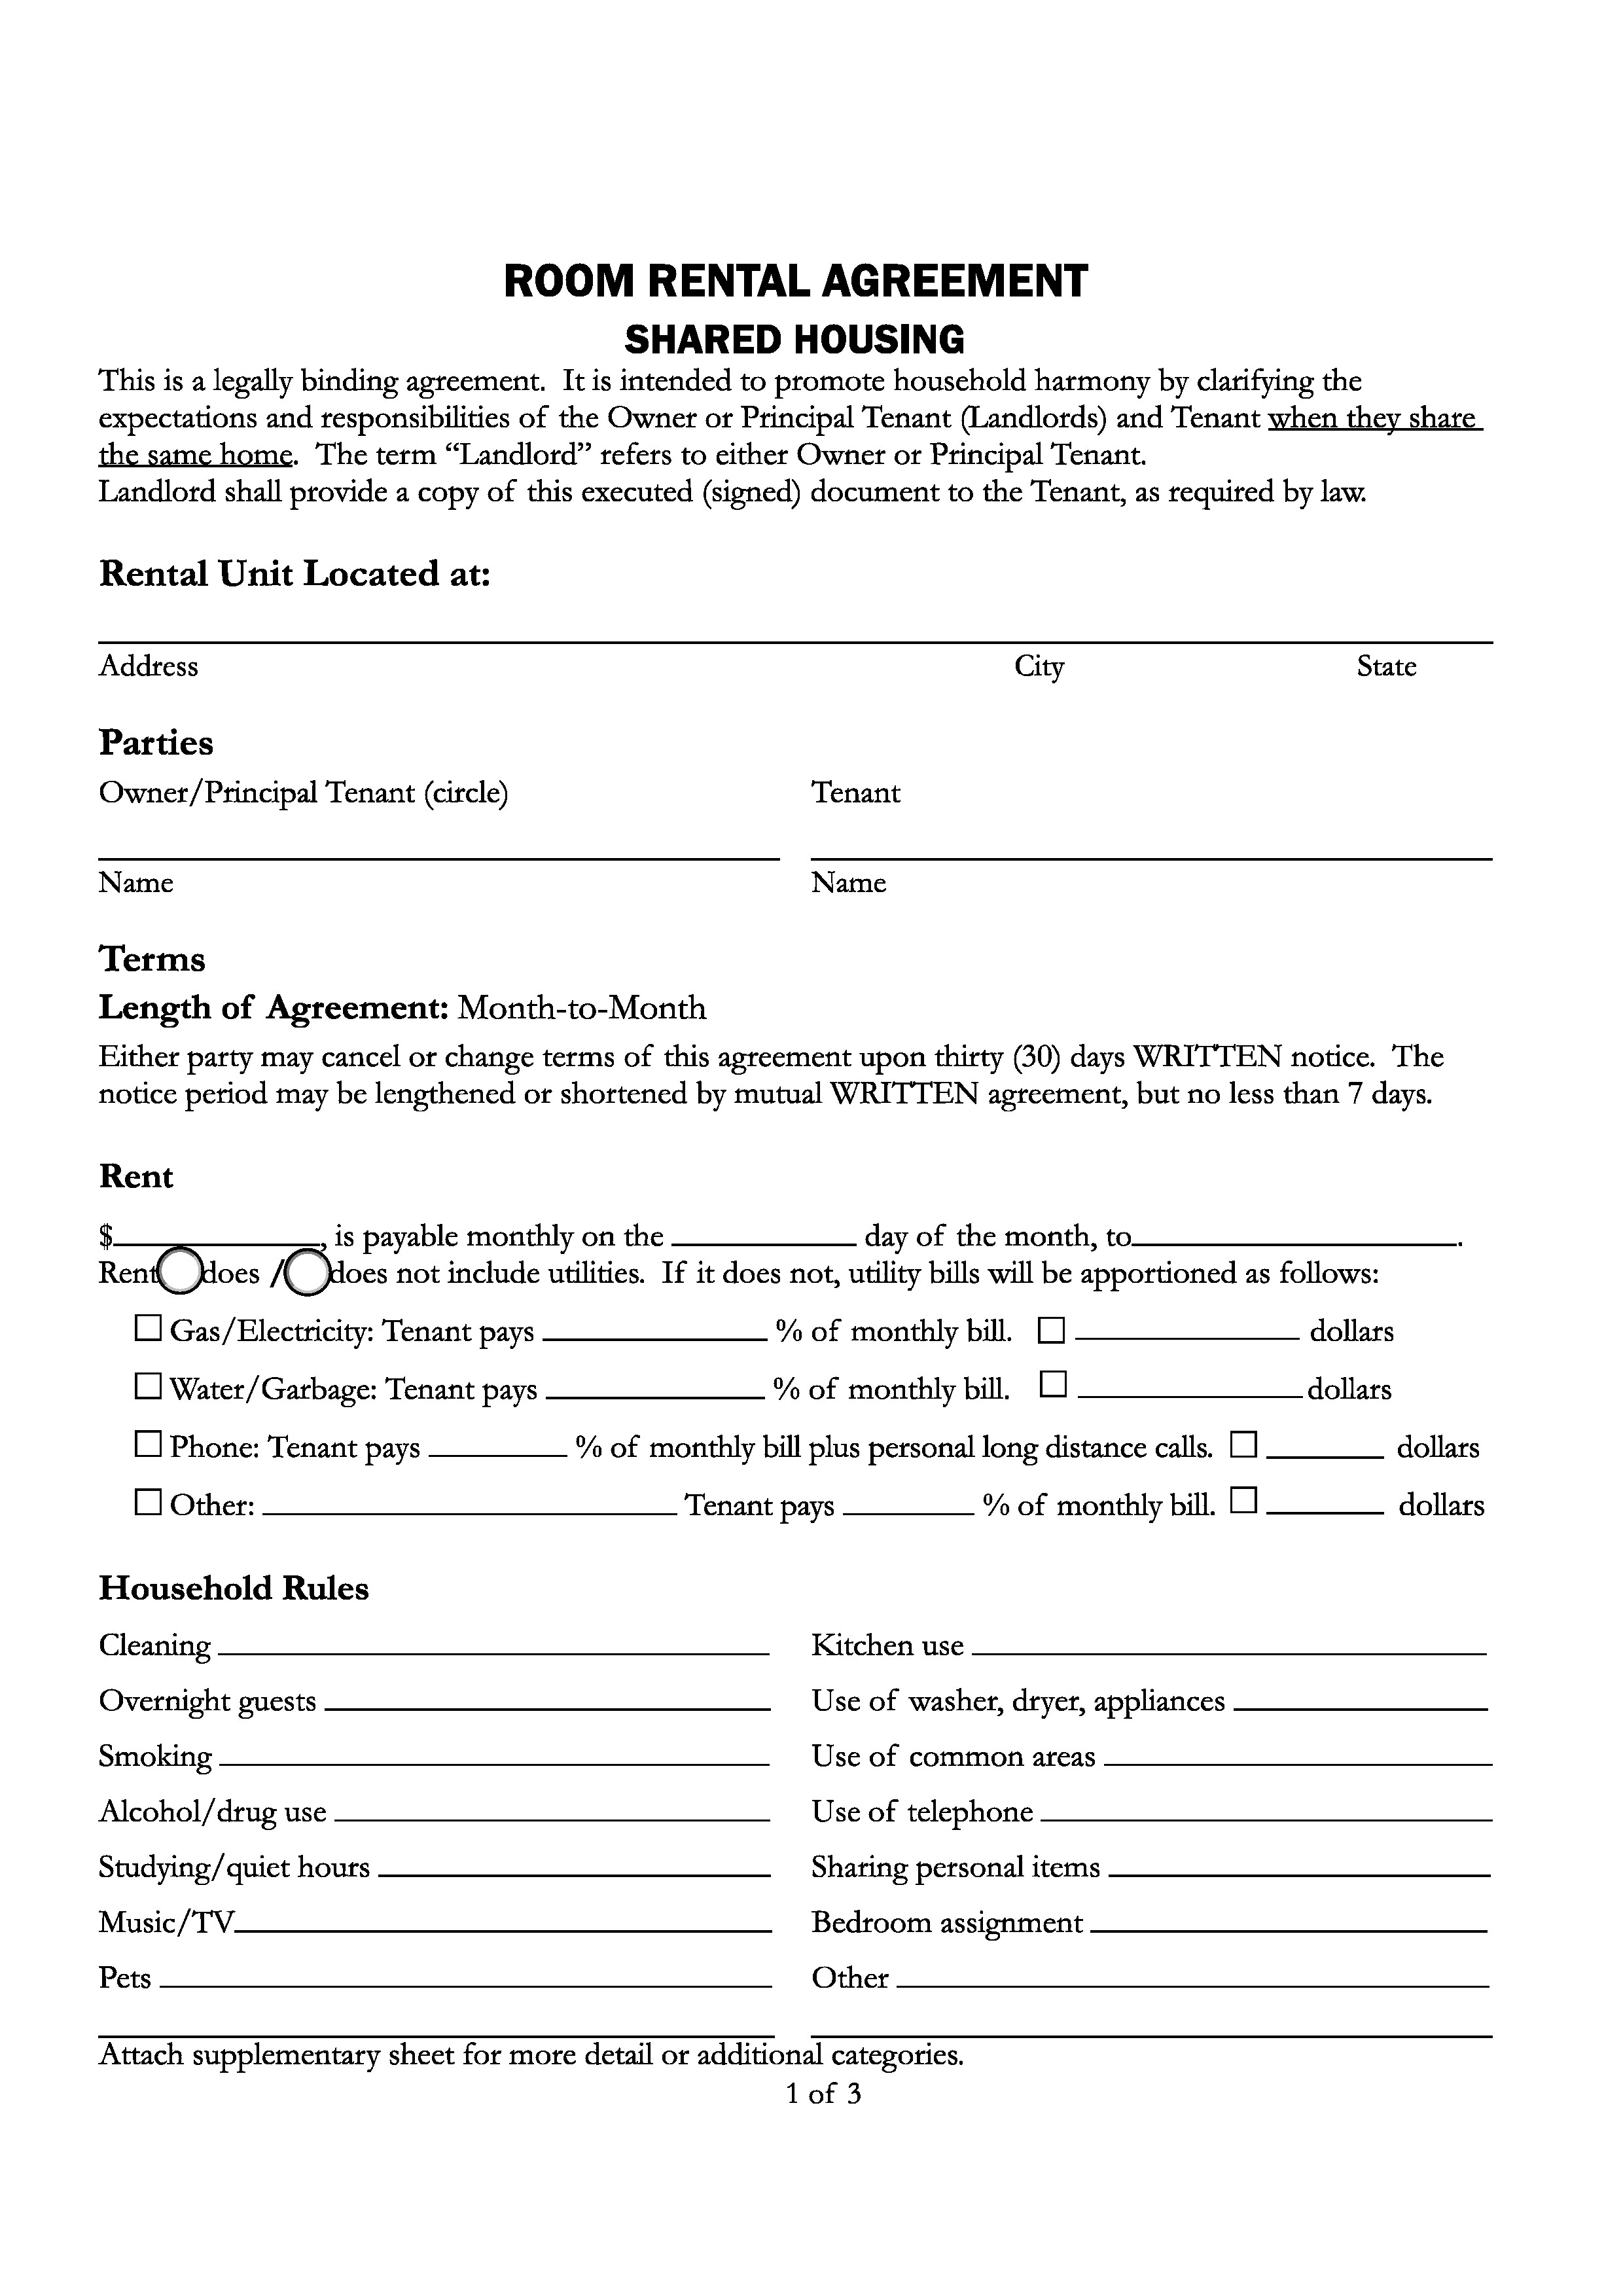 Free Santa Cruz County,California Room Rental Agreement | PDF | Word | Do  It Yourself Forms  Free Tenant Agreement